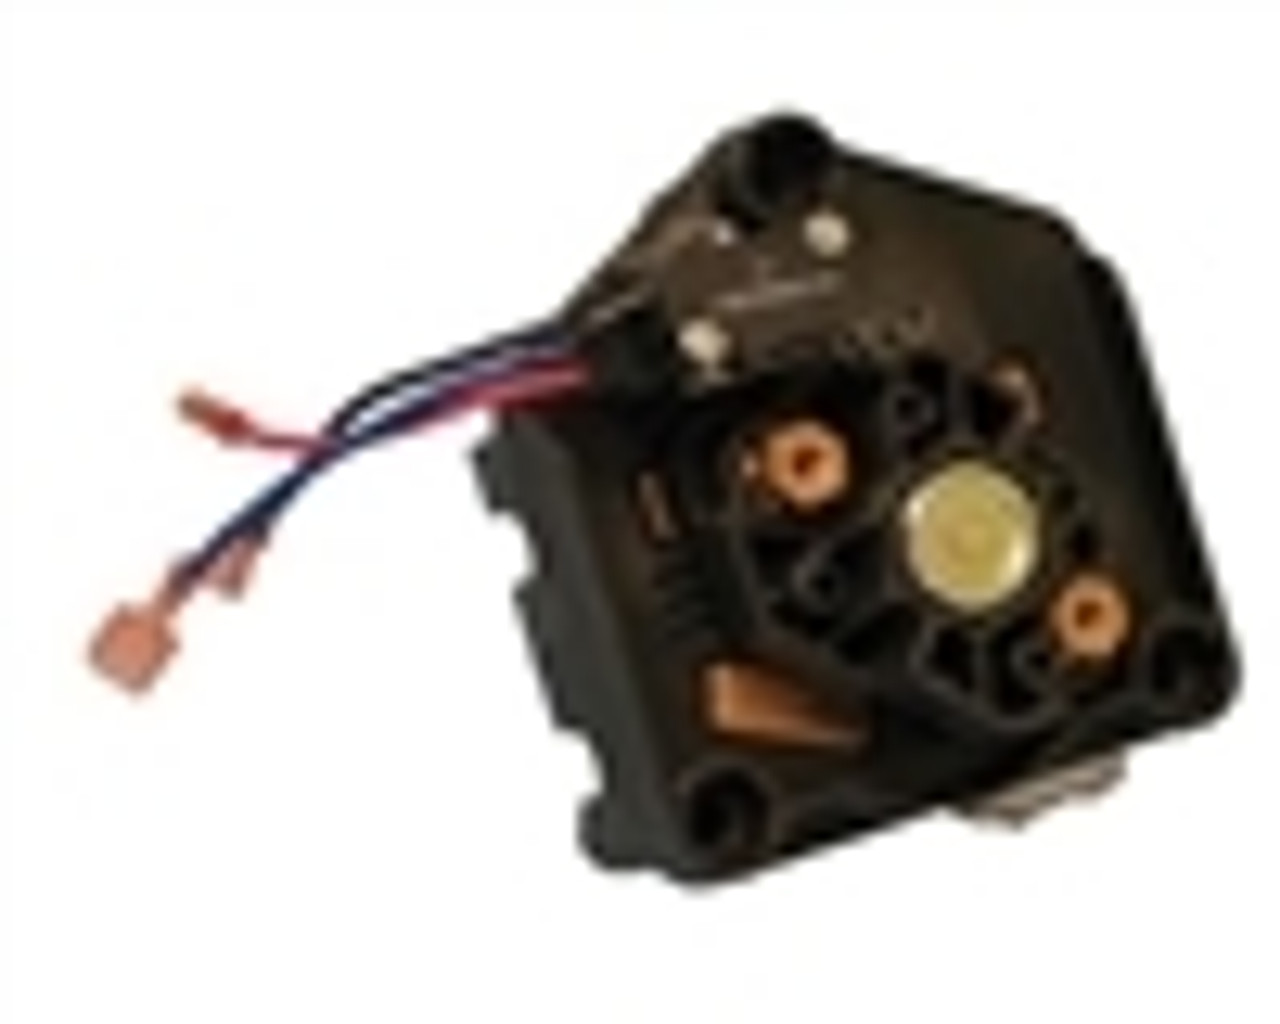 Forward/Reverse Switches & Parts